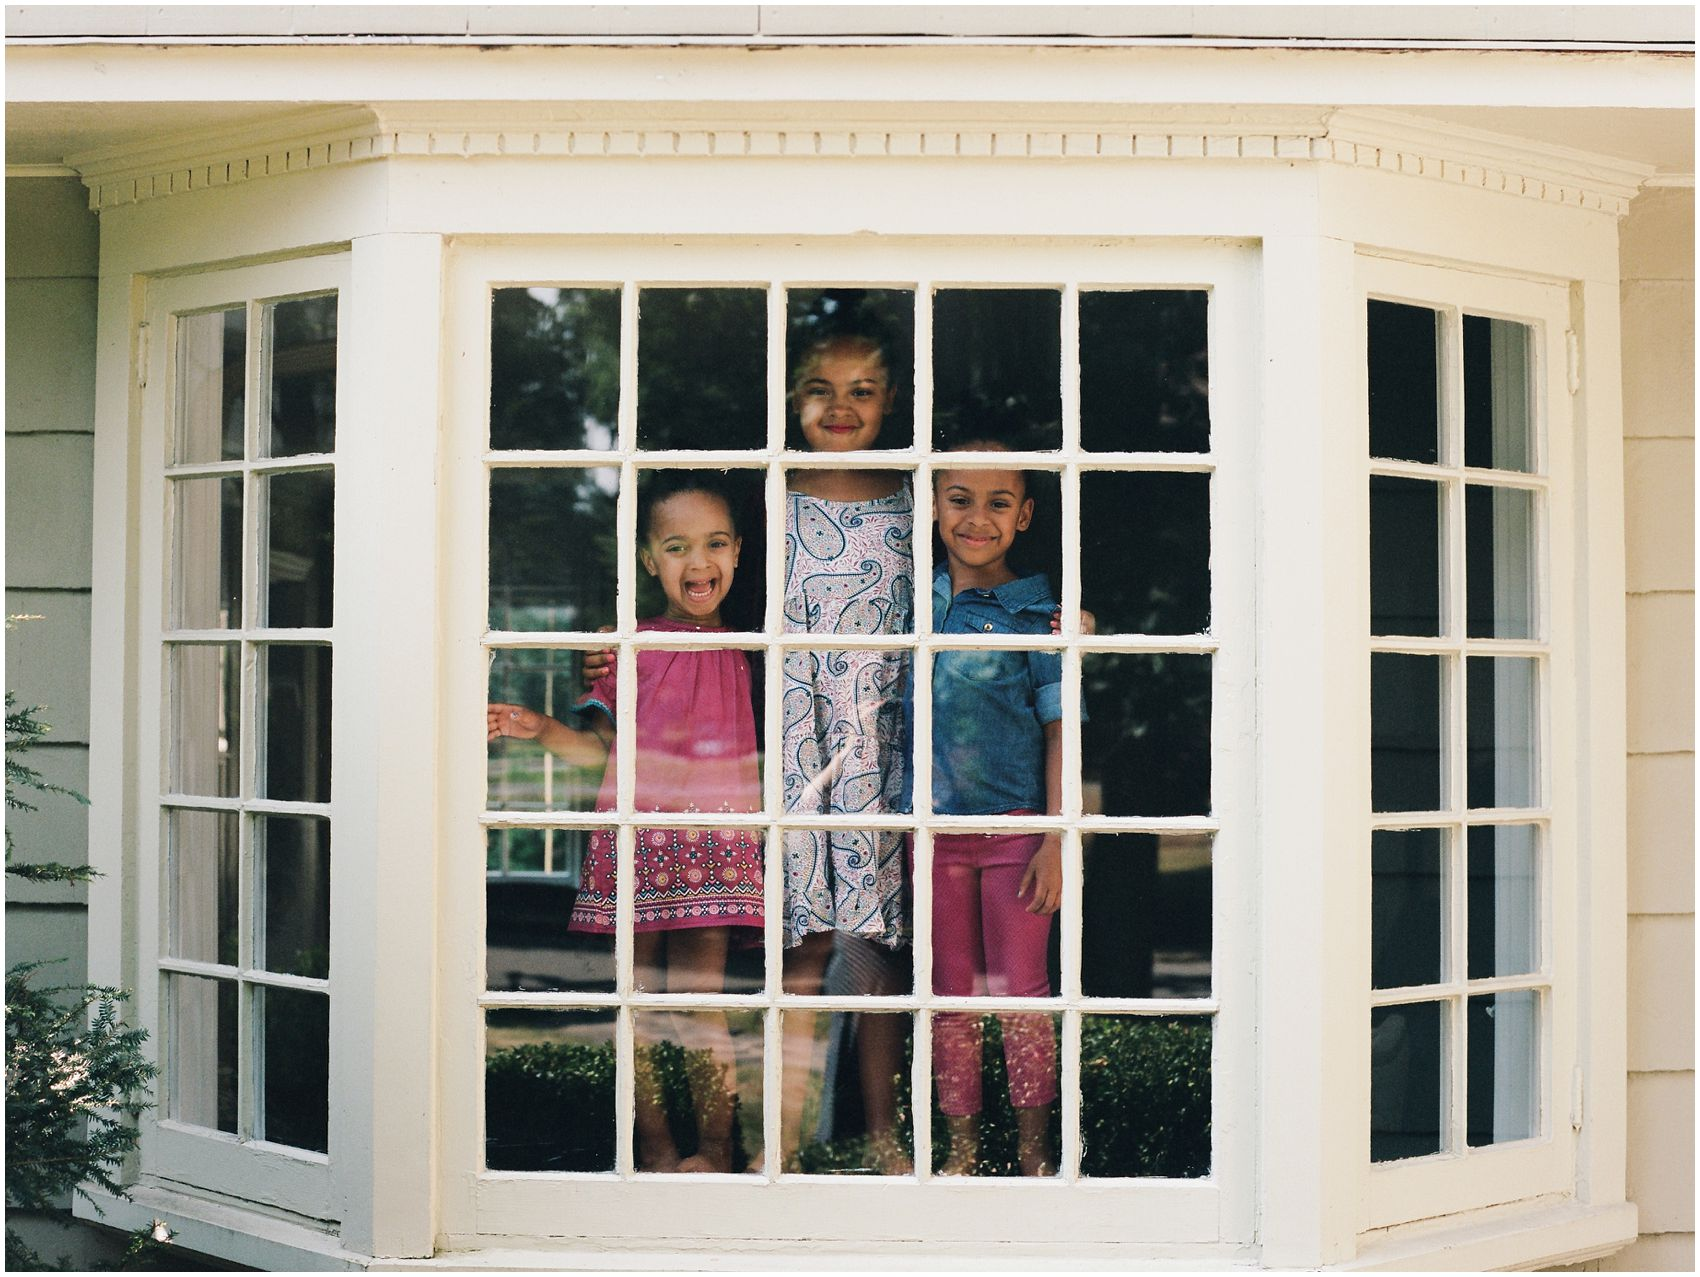 girls looking out in the window of their New Jersey home